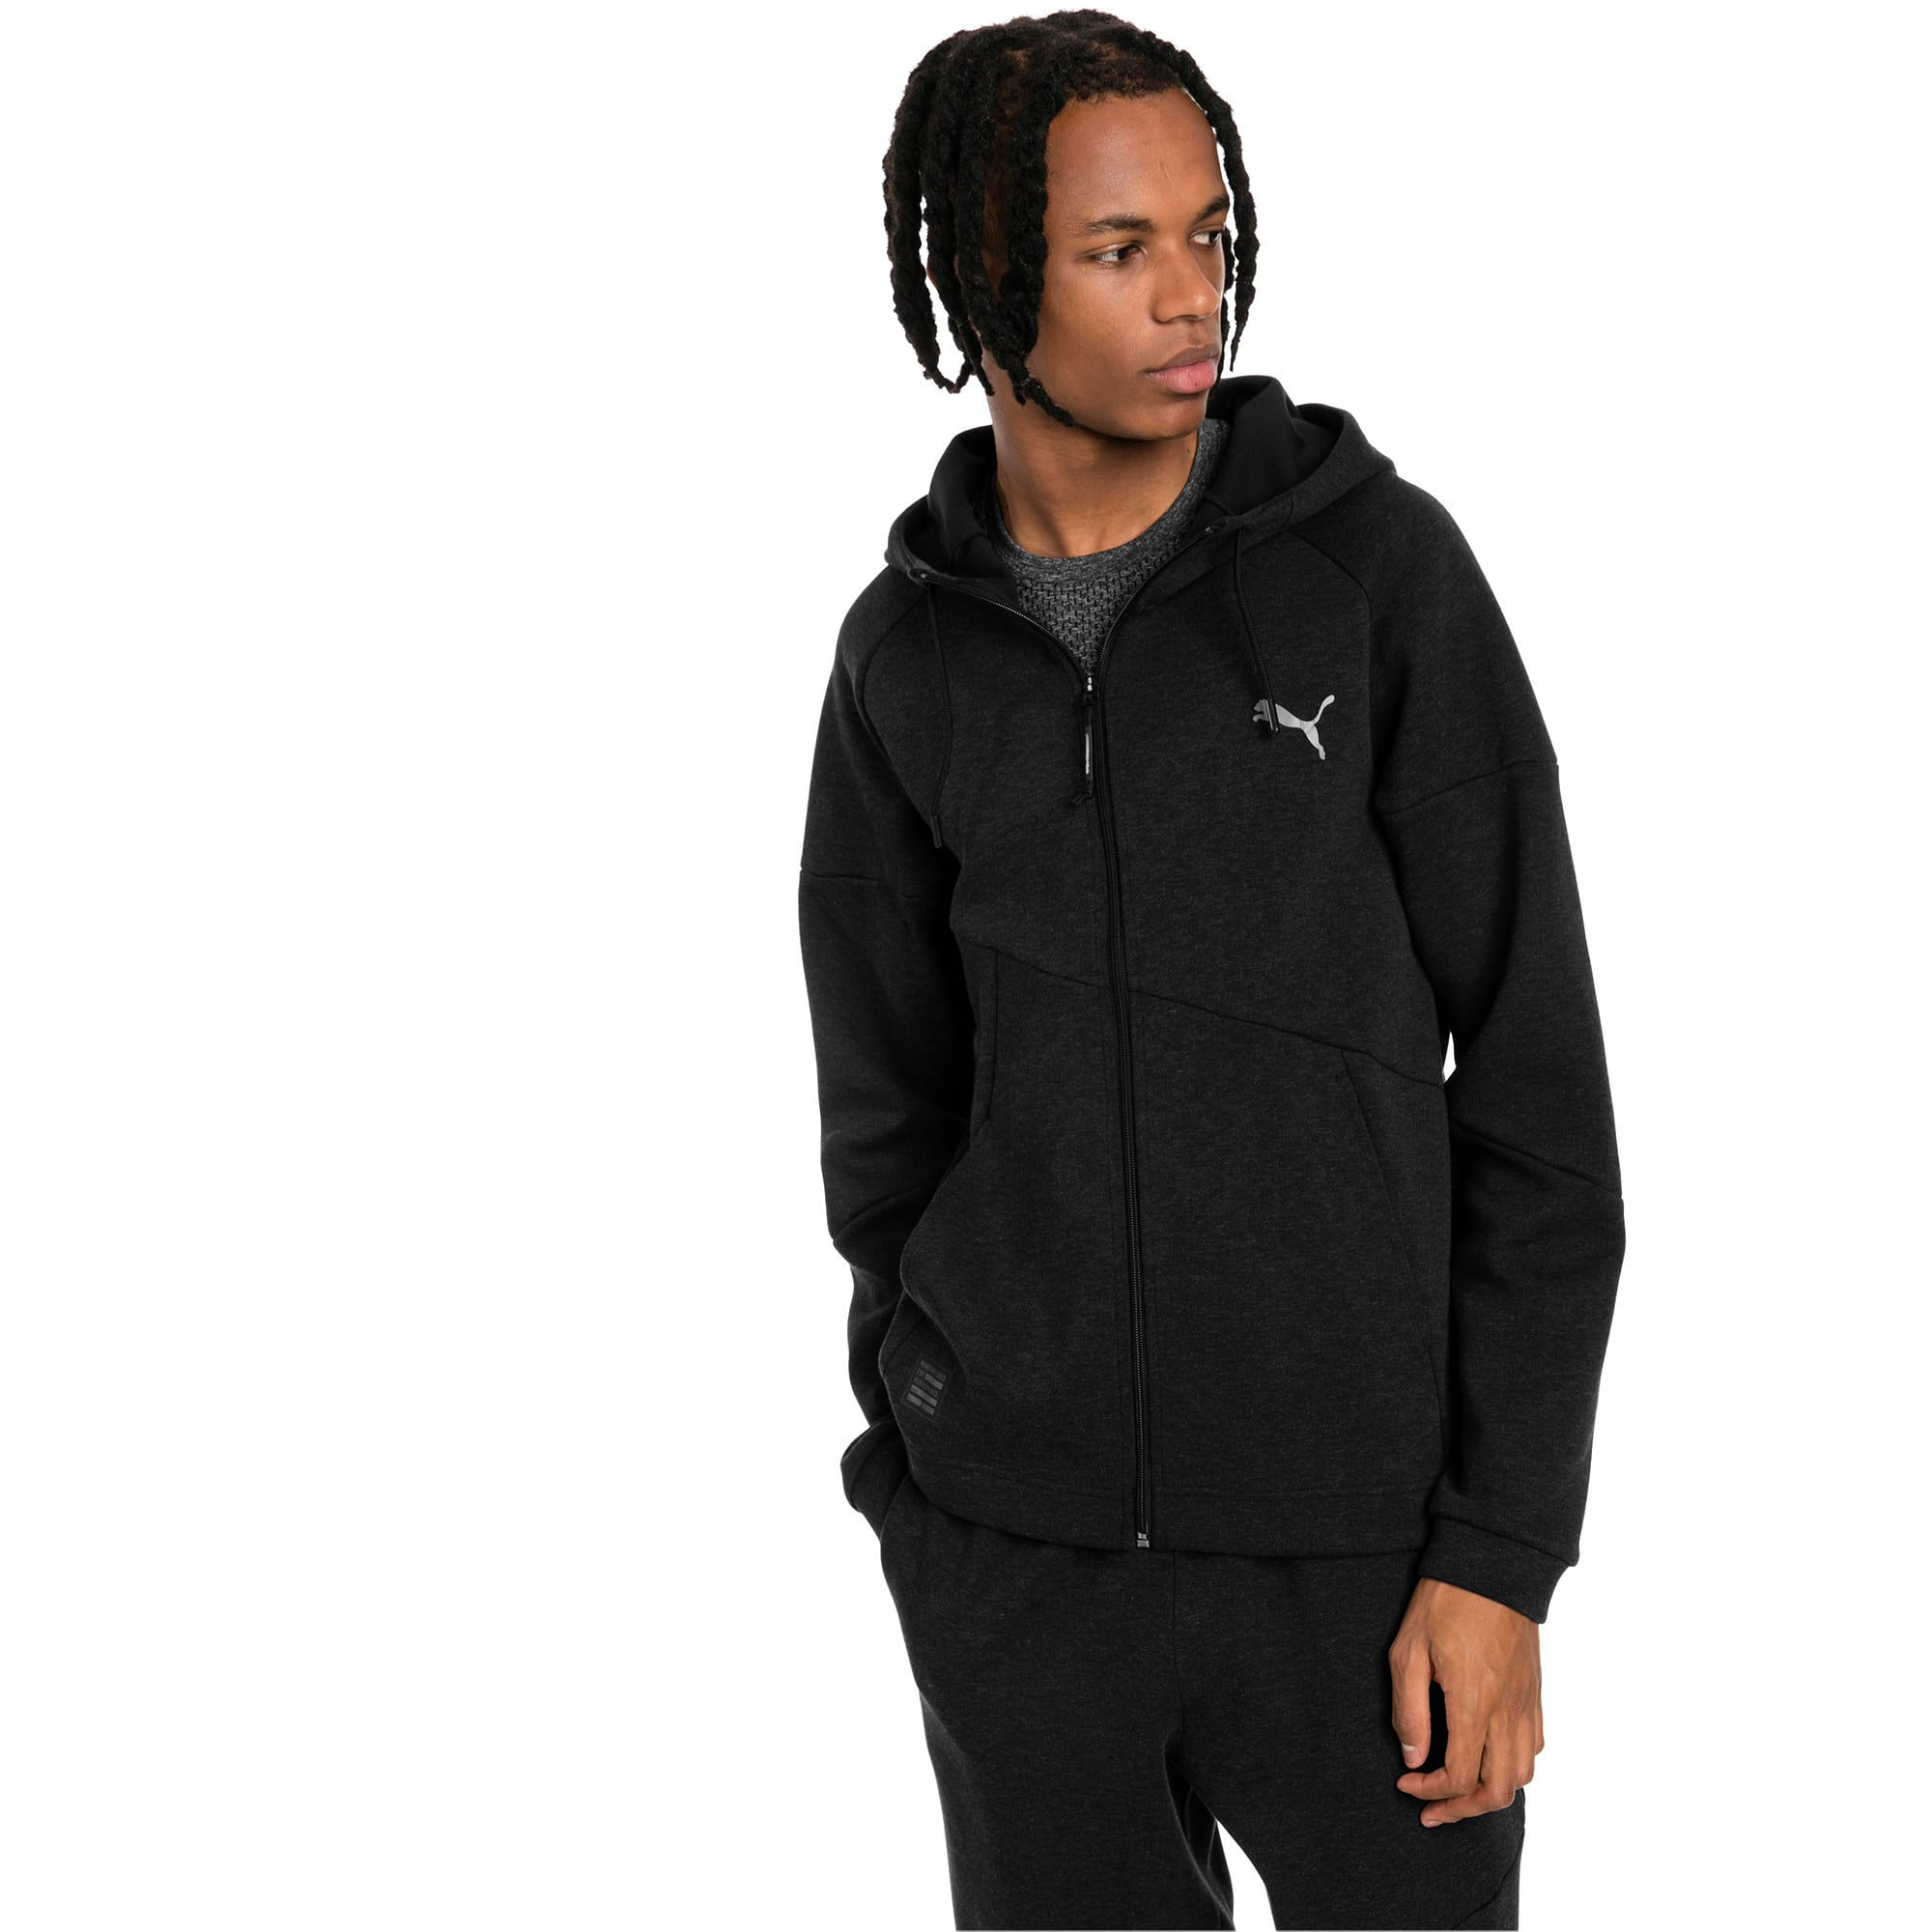 Thumbnail 1 of BND Tech Second Layer Knitted Hooded Men's Jacket, Puma Black Heather, medium-IND